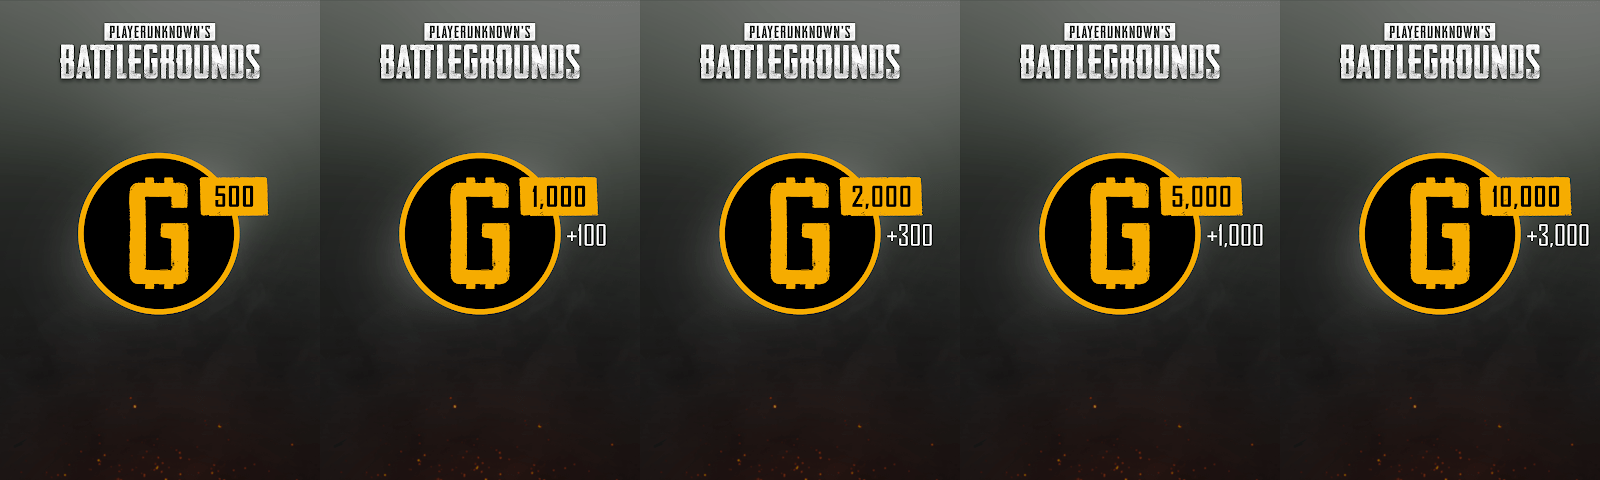 Playerunknown's battlegrounds (pubg) g-coin & crate system detailed - onmsft. Com - august 30, 2018